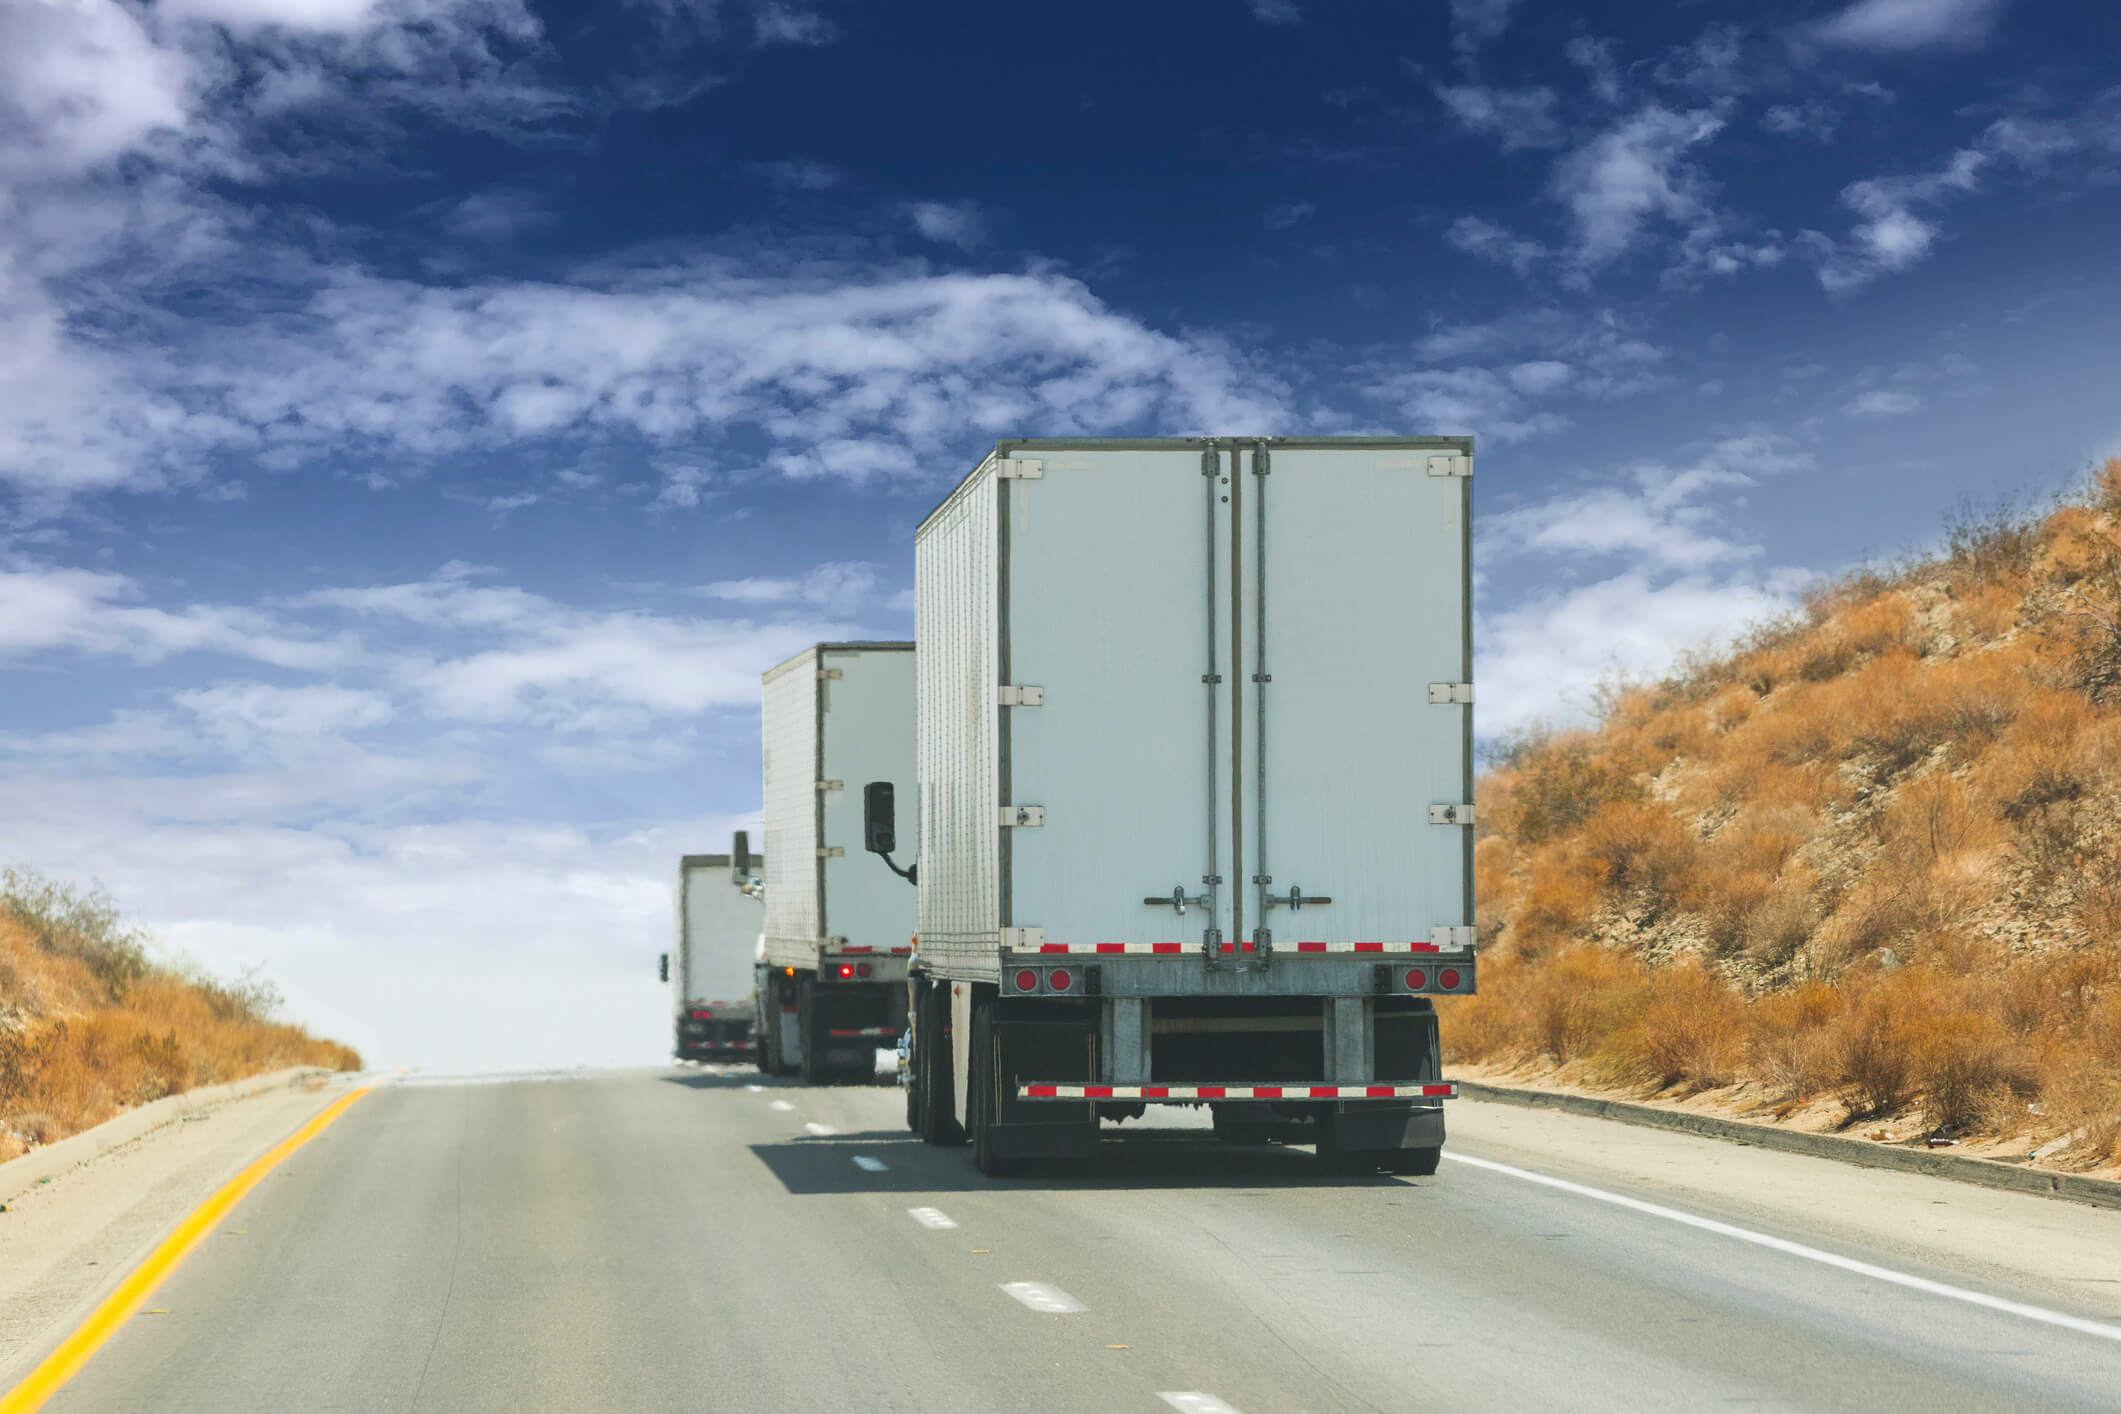 Ways to drive safely near commercial trucks in Tennessee.